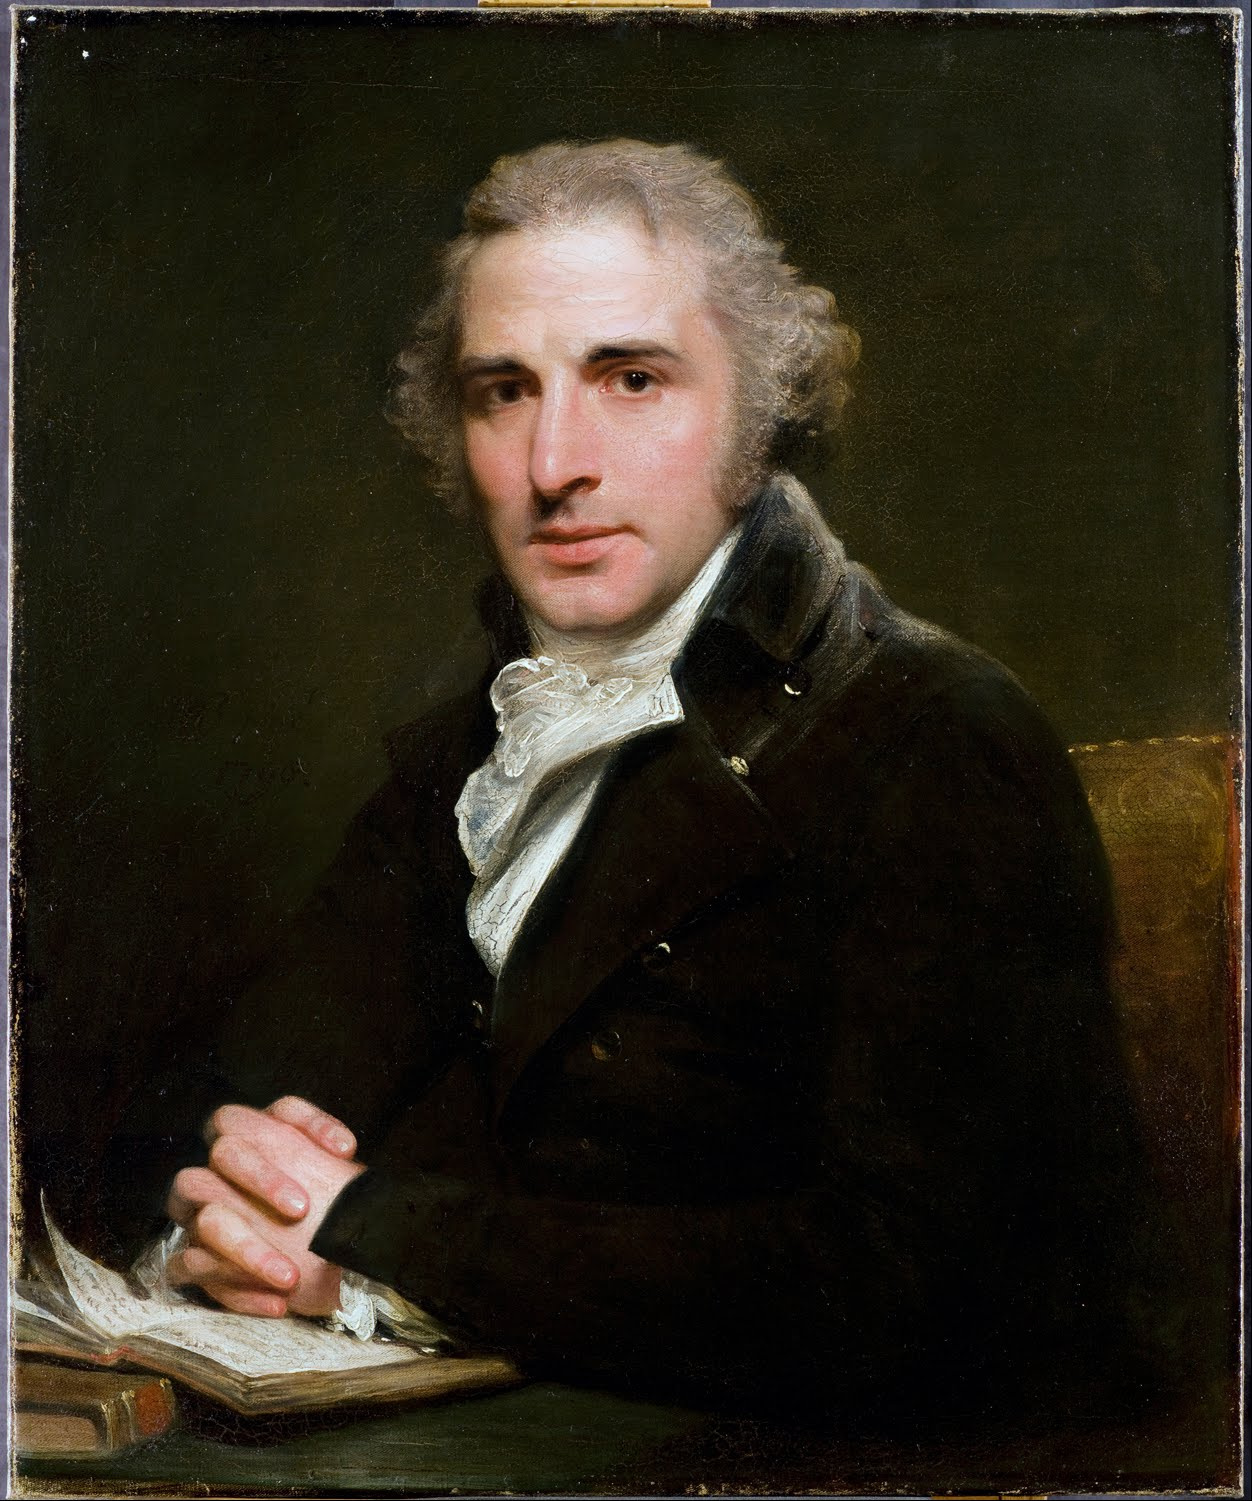 John Philip Kemble by Sir [[William Beechey]], 1798